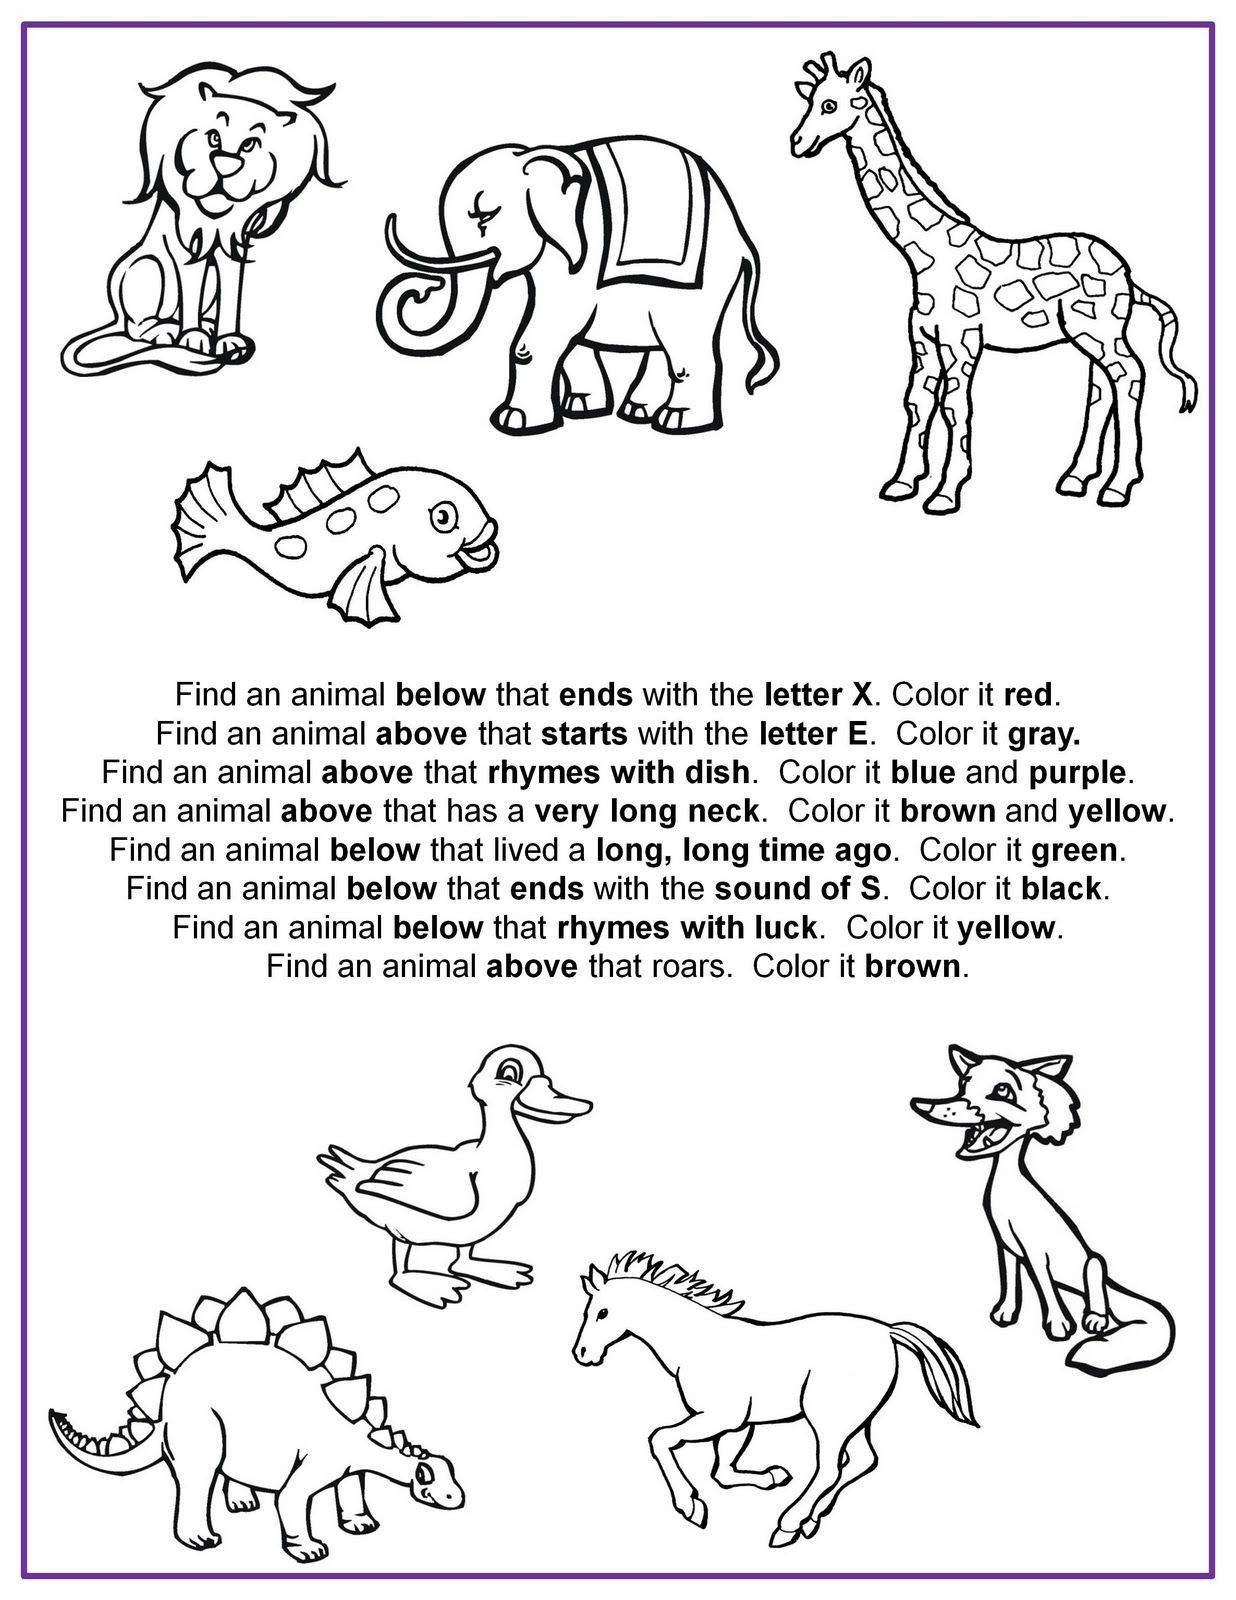 Free Worksheet Following Directions Worksheets 17 best images about following directions on pinterest 2 step language and new school year